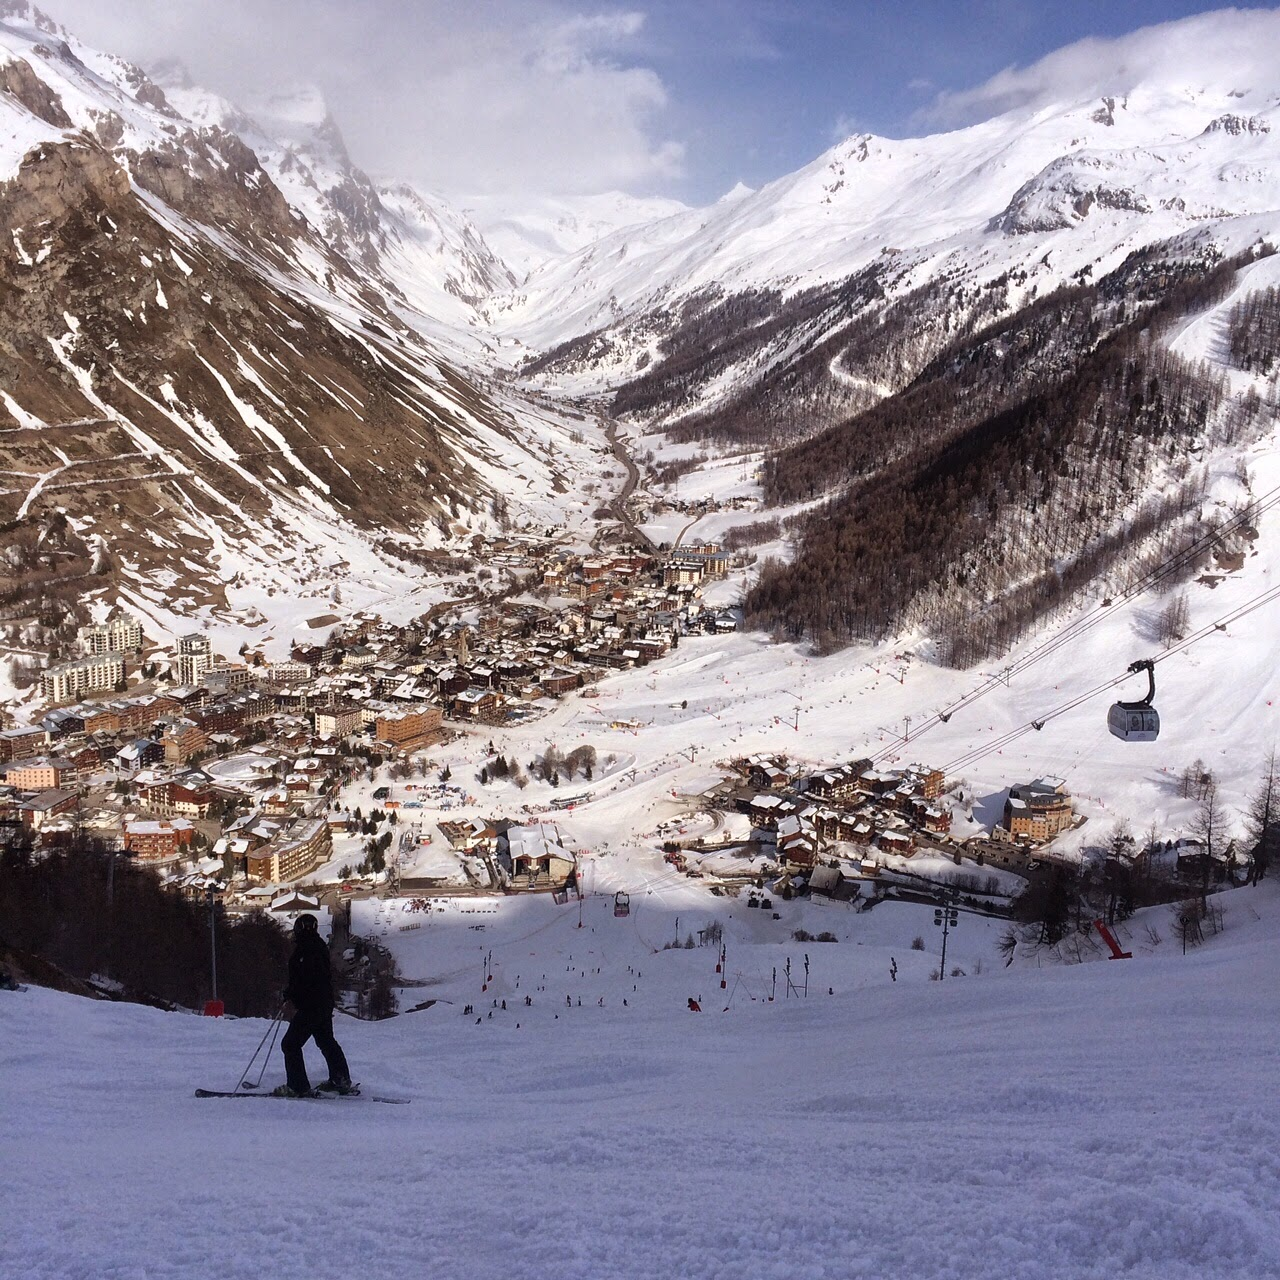 val d'isere view